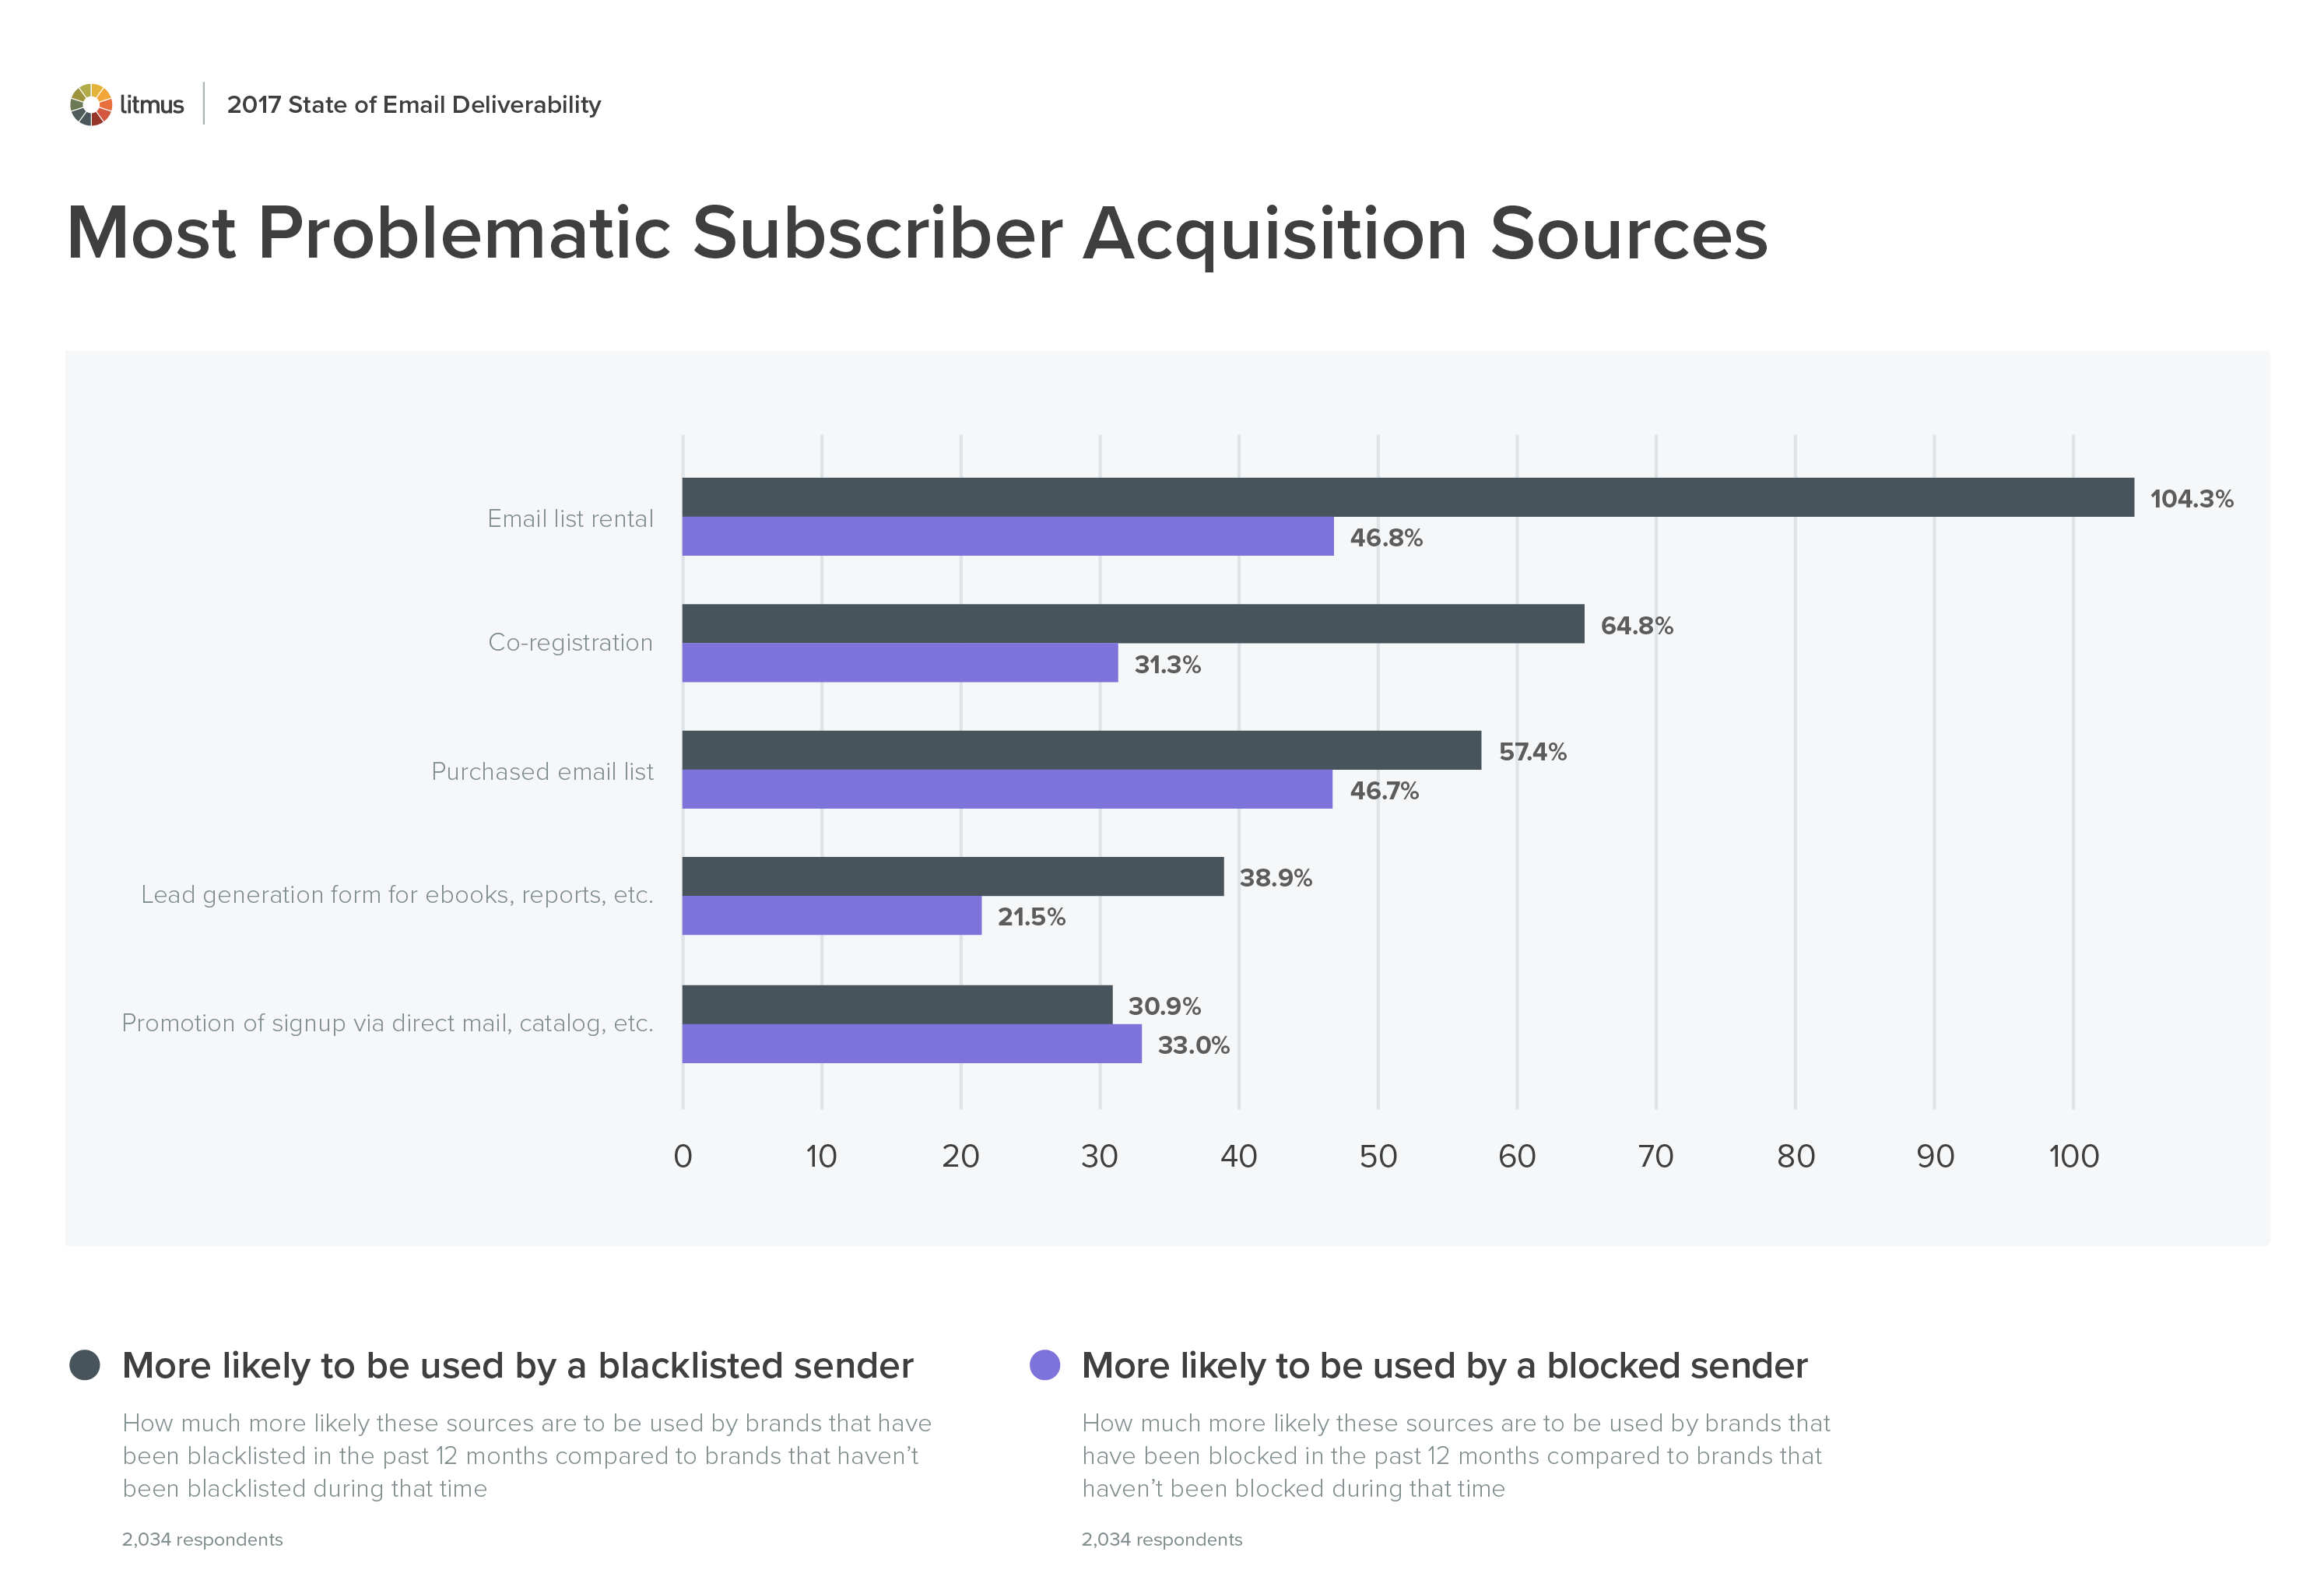 Click to enlarge - Most Problematic Subscriber Acquisition Sources chart